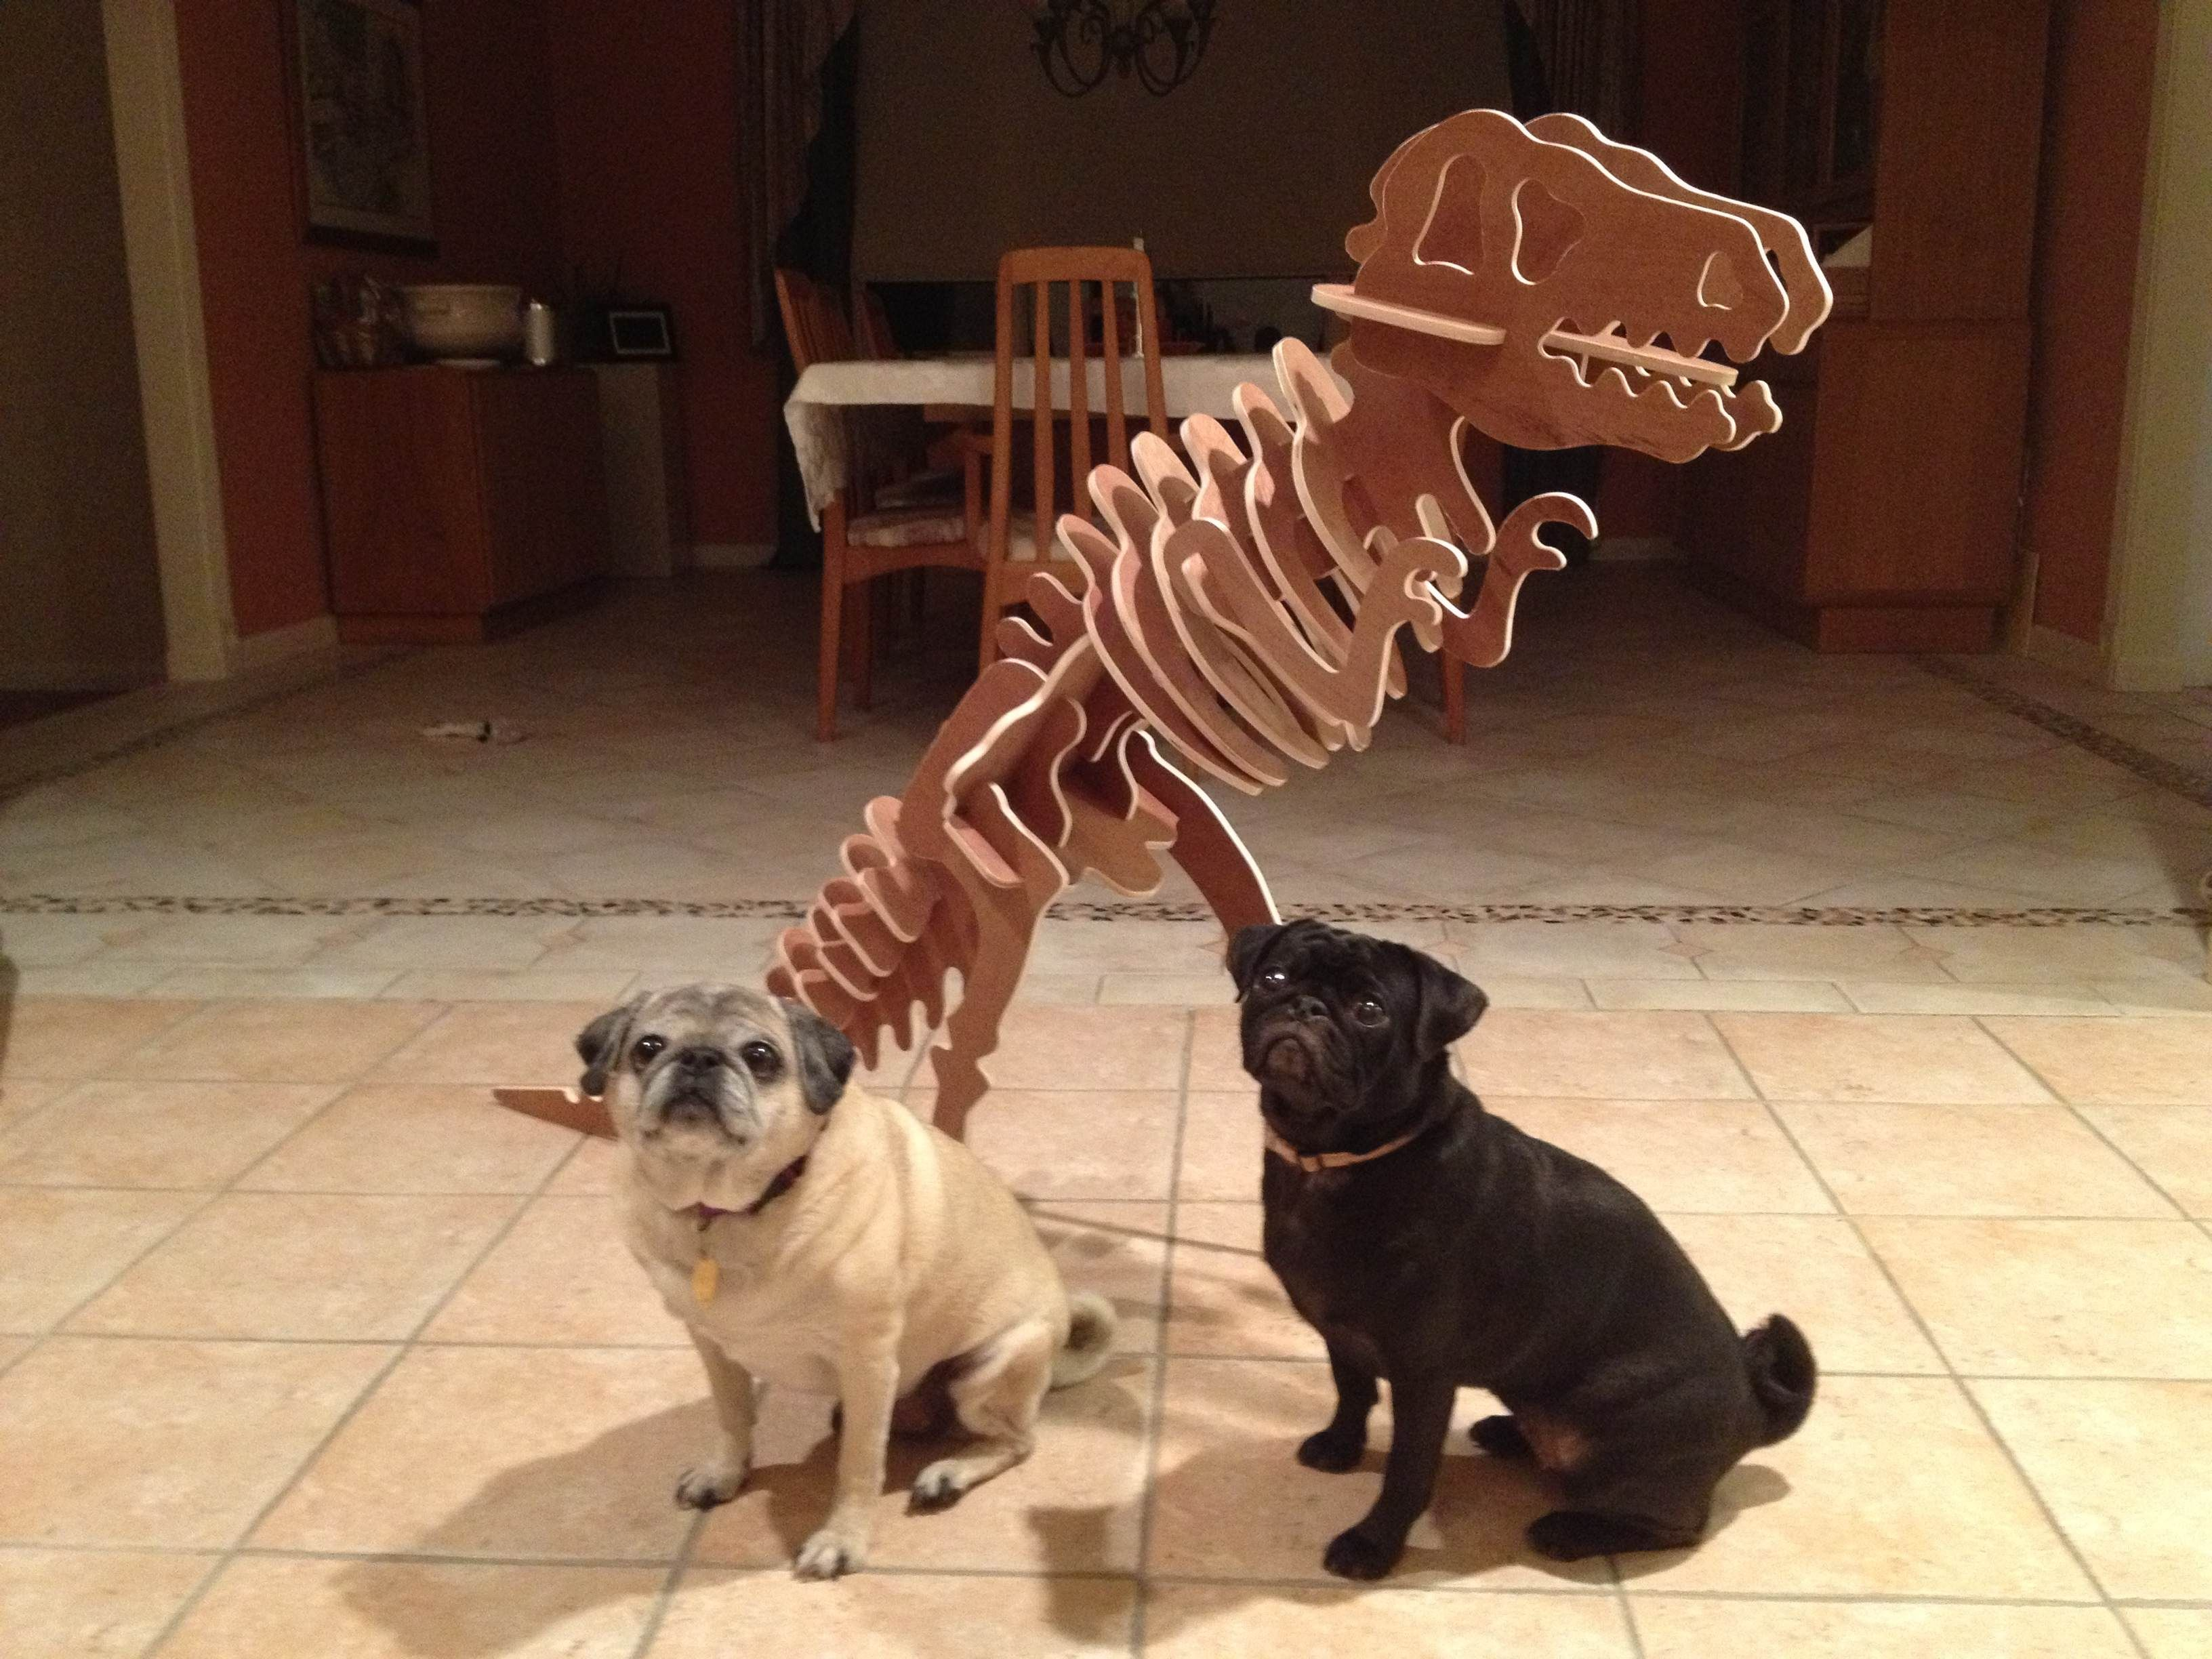 visit www.makeCNC.com to purchase this pattern Gigantic T-Rex and 2 Very Adorable Pups :)